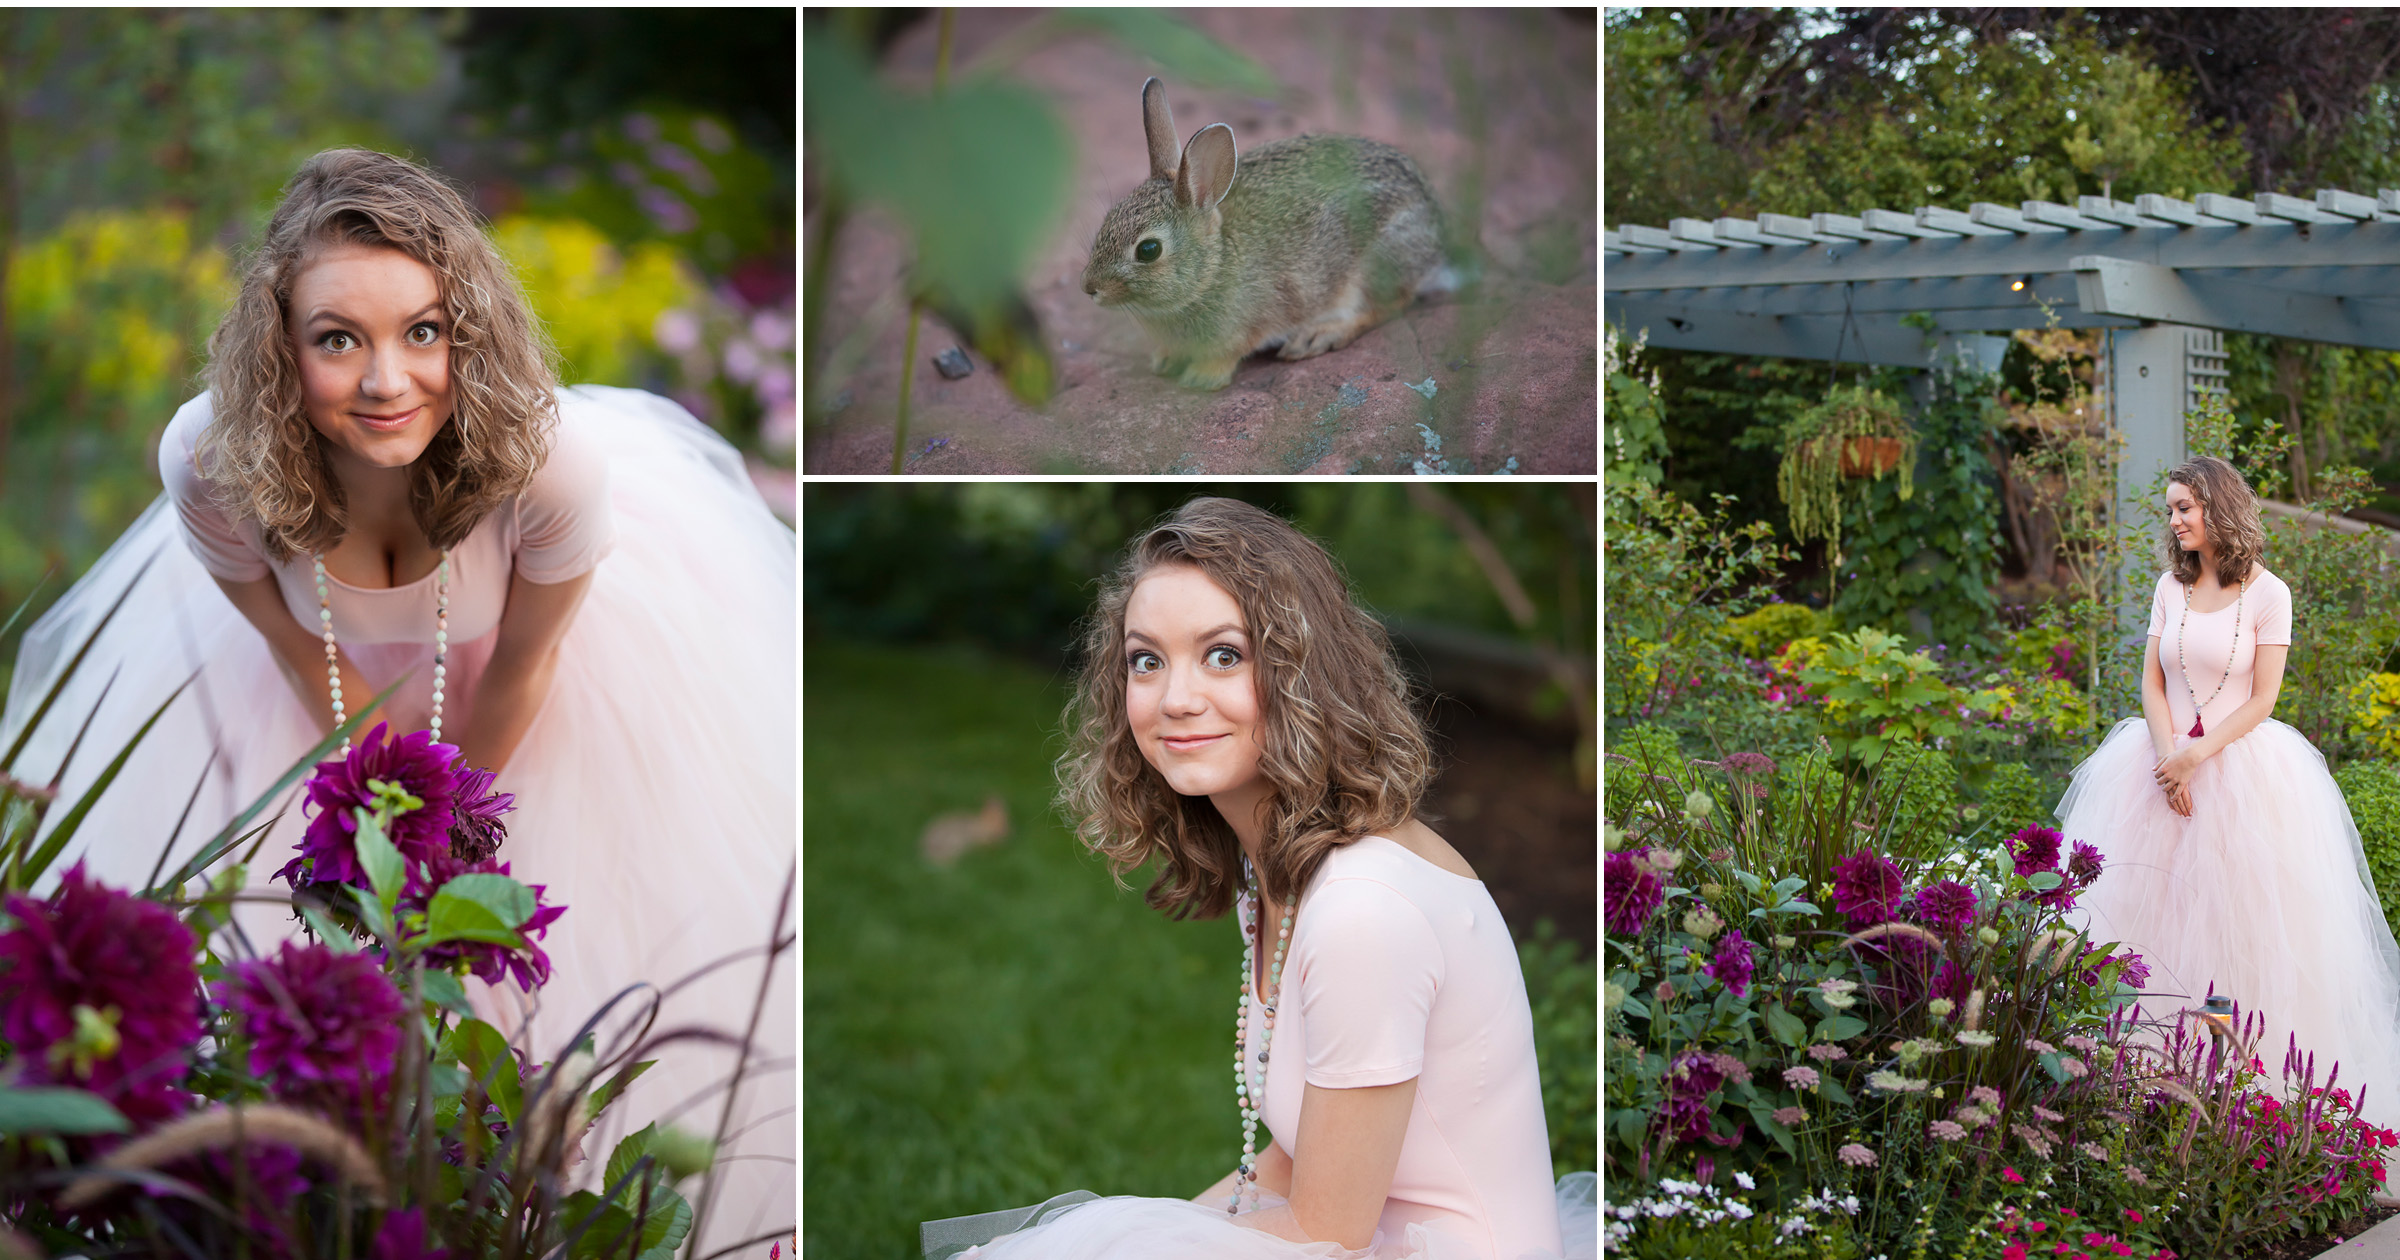 denver-senior-pictures-garden-bunny.jpg